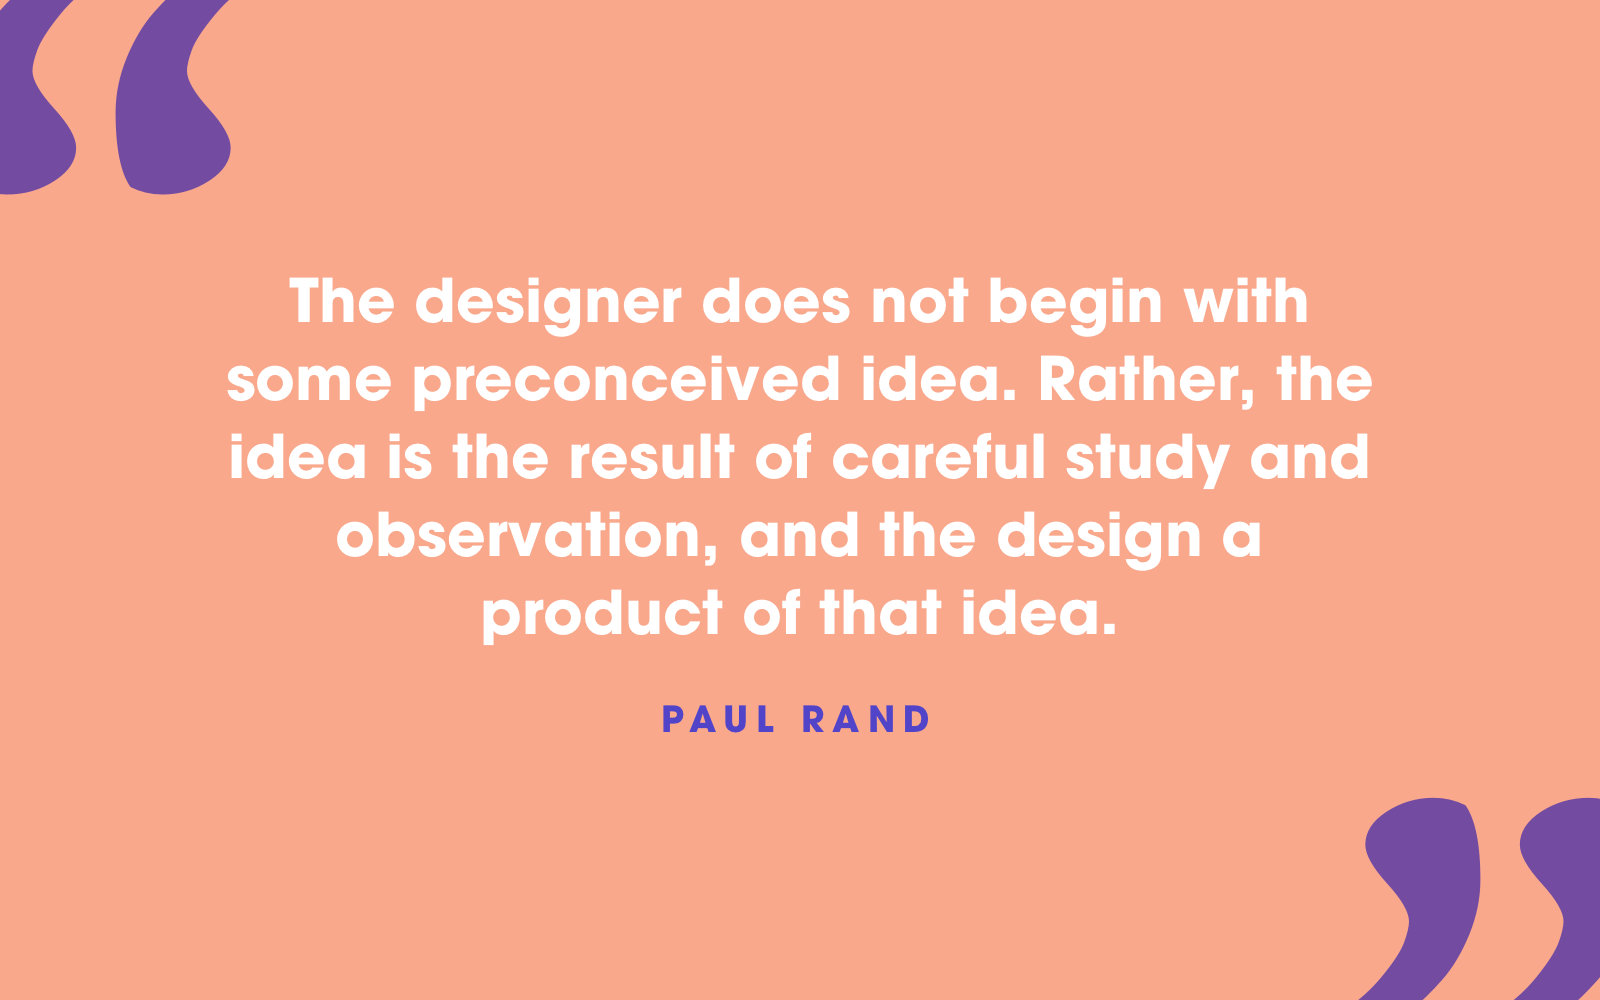 Interior Design Quotation 35 Quotes On Design That Will Fuel Up Your Creativity